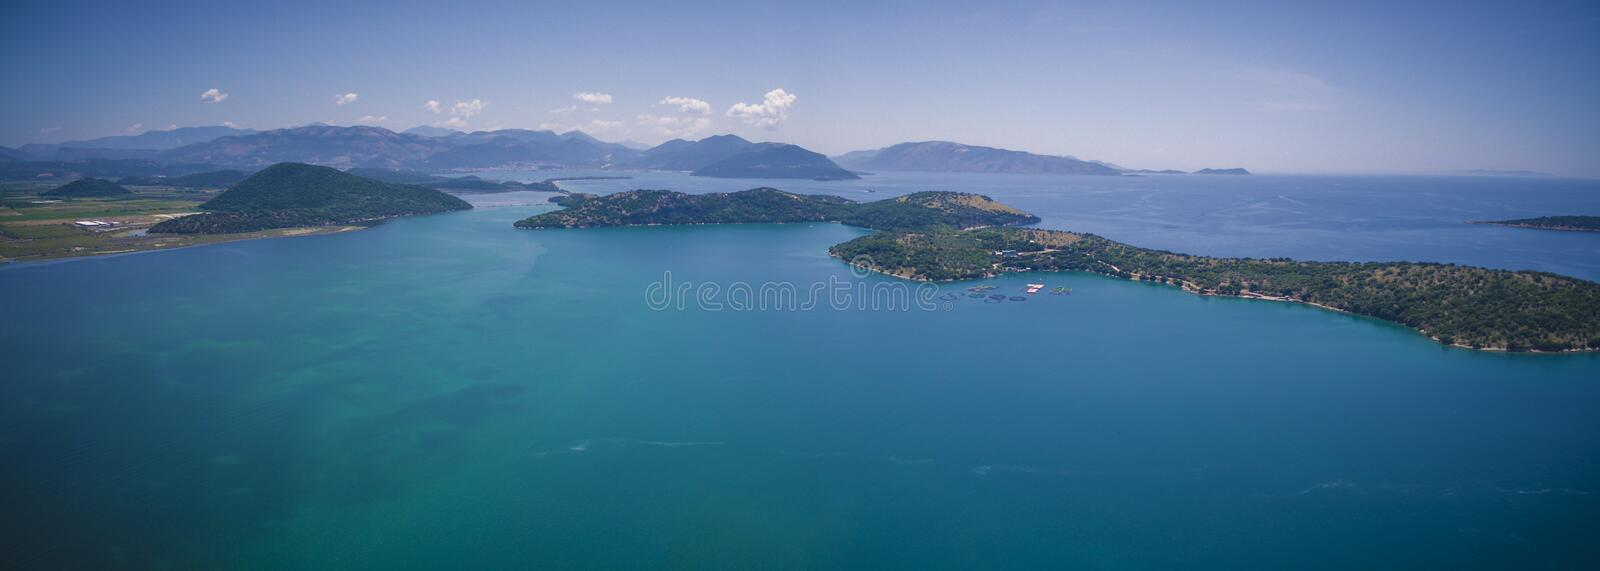 Aerial drone view of Kalamas beach and landscape outside Corfu Island.Greece. Amazing.Panorama royalty free stock photography